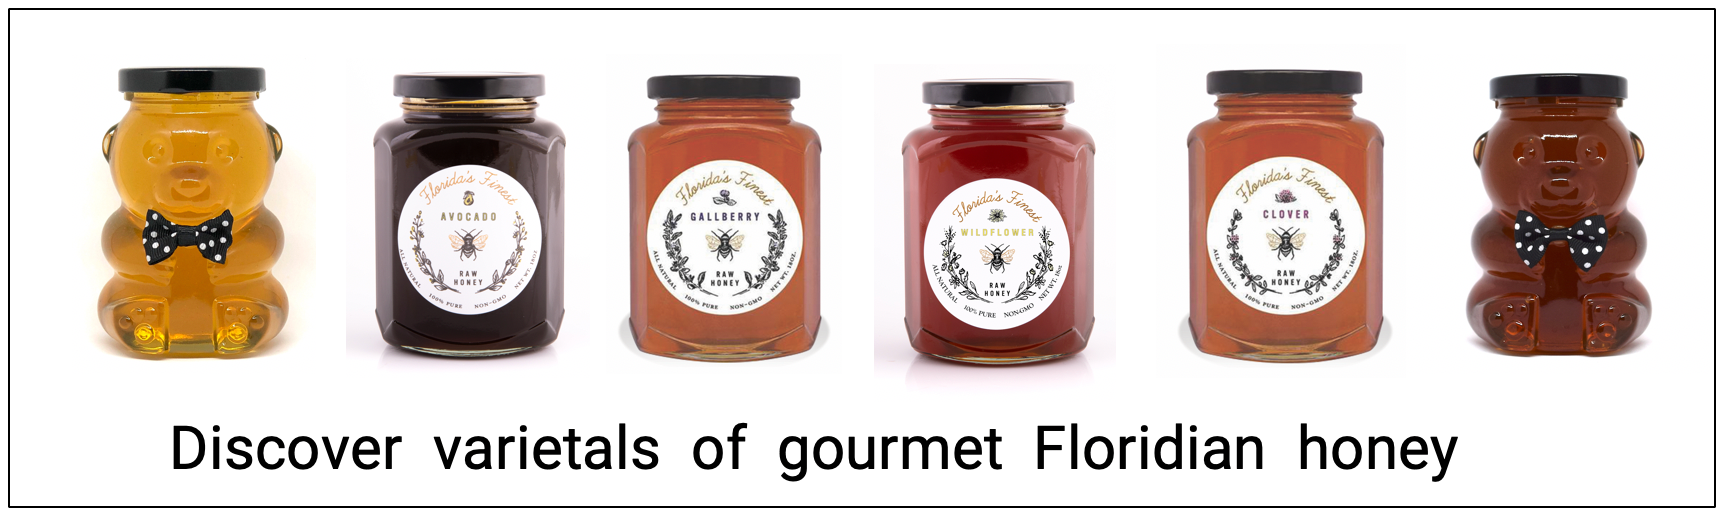 Honey varietals of Florida's Finest Raw Honey: Tupelo, Buckwheat, Clover, Orange Blossom, Saw Palmetto, Rare Avocado and Manuka honey.